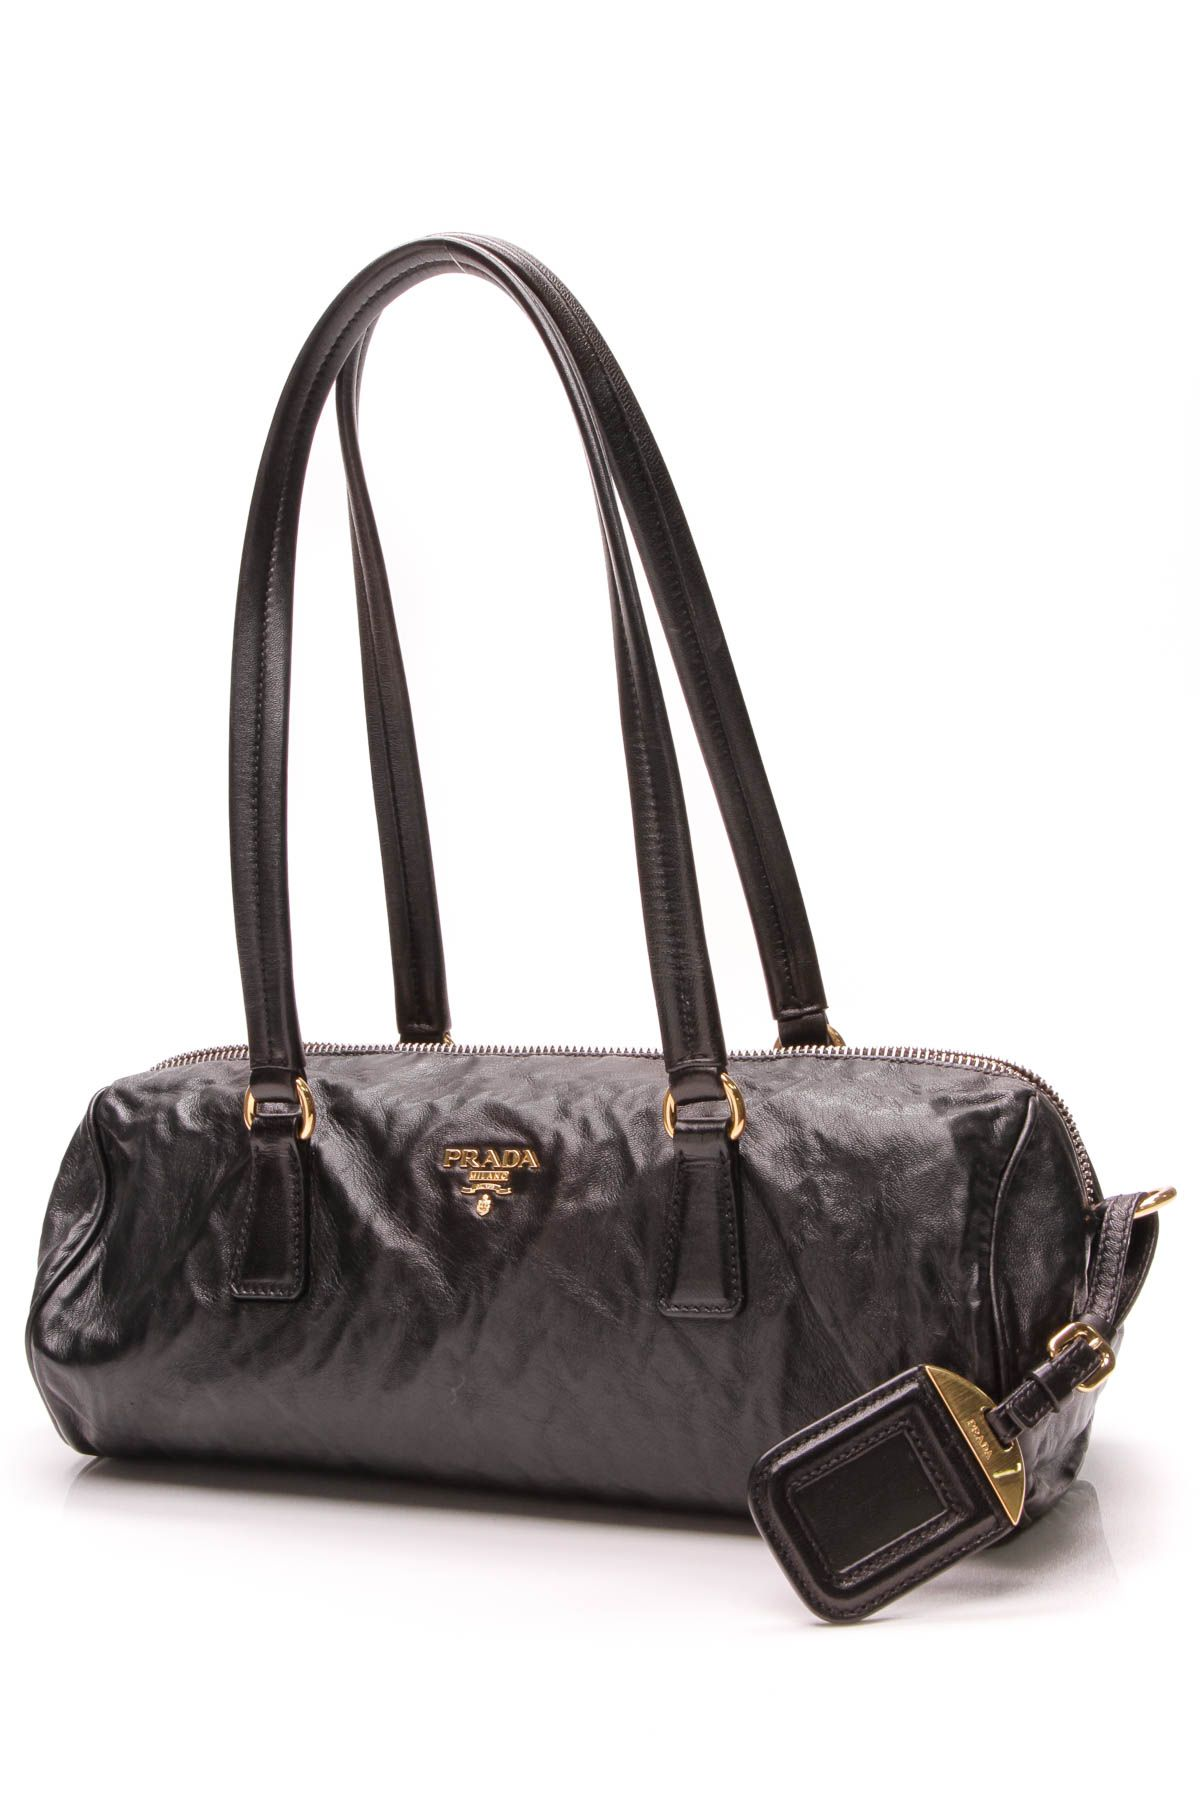 62305f21bbb5 Bauletto Bag - Black Nappa Leather in 2019